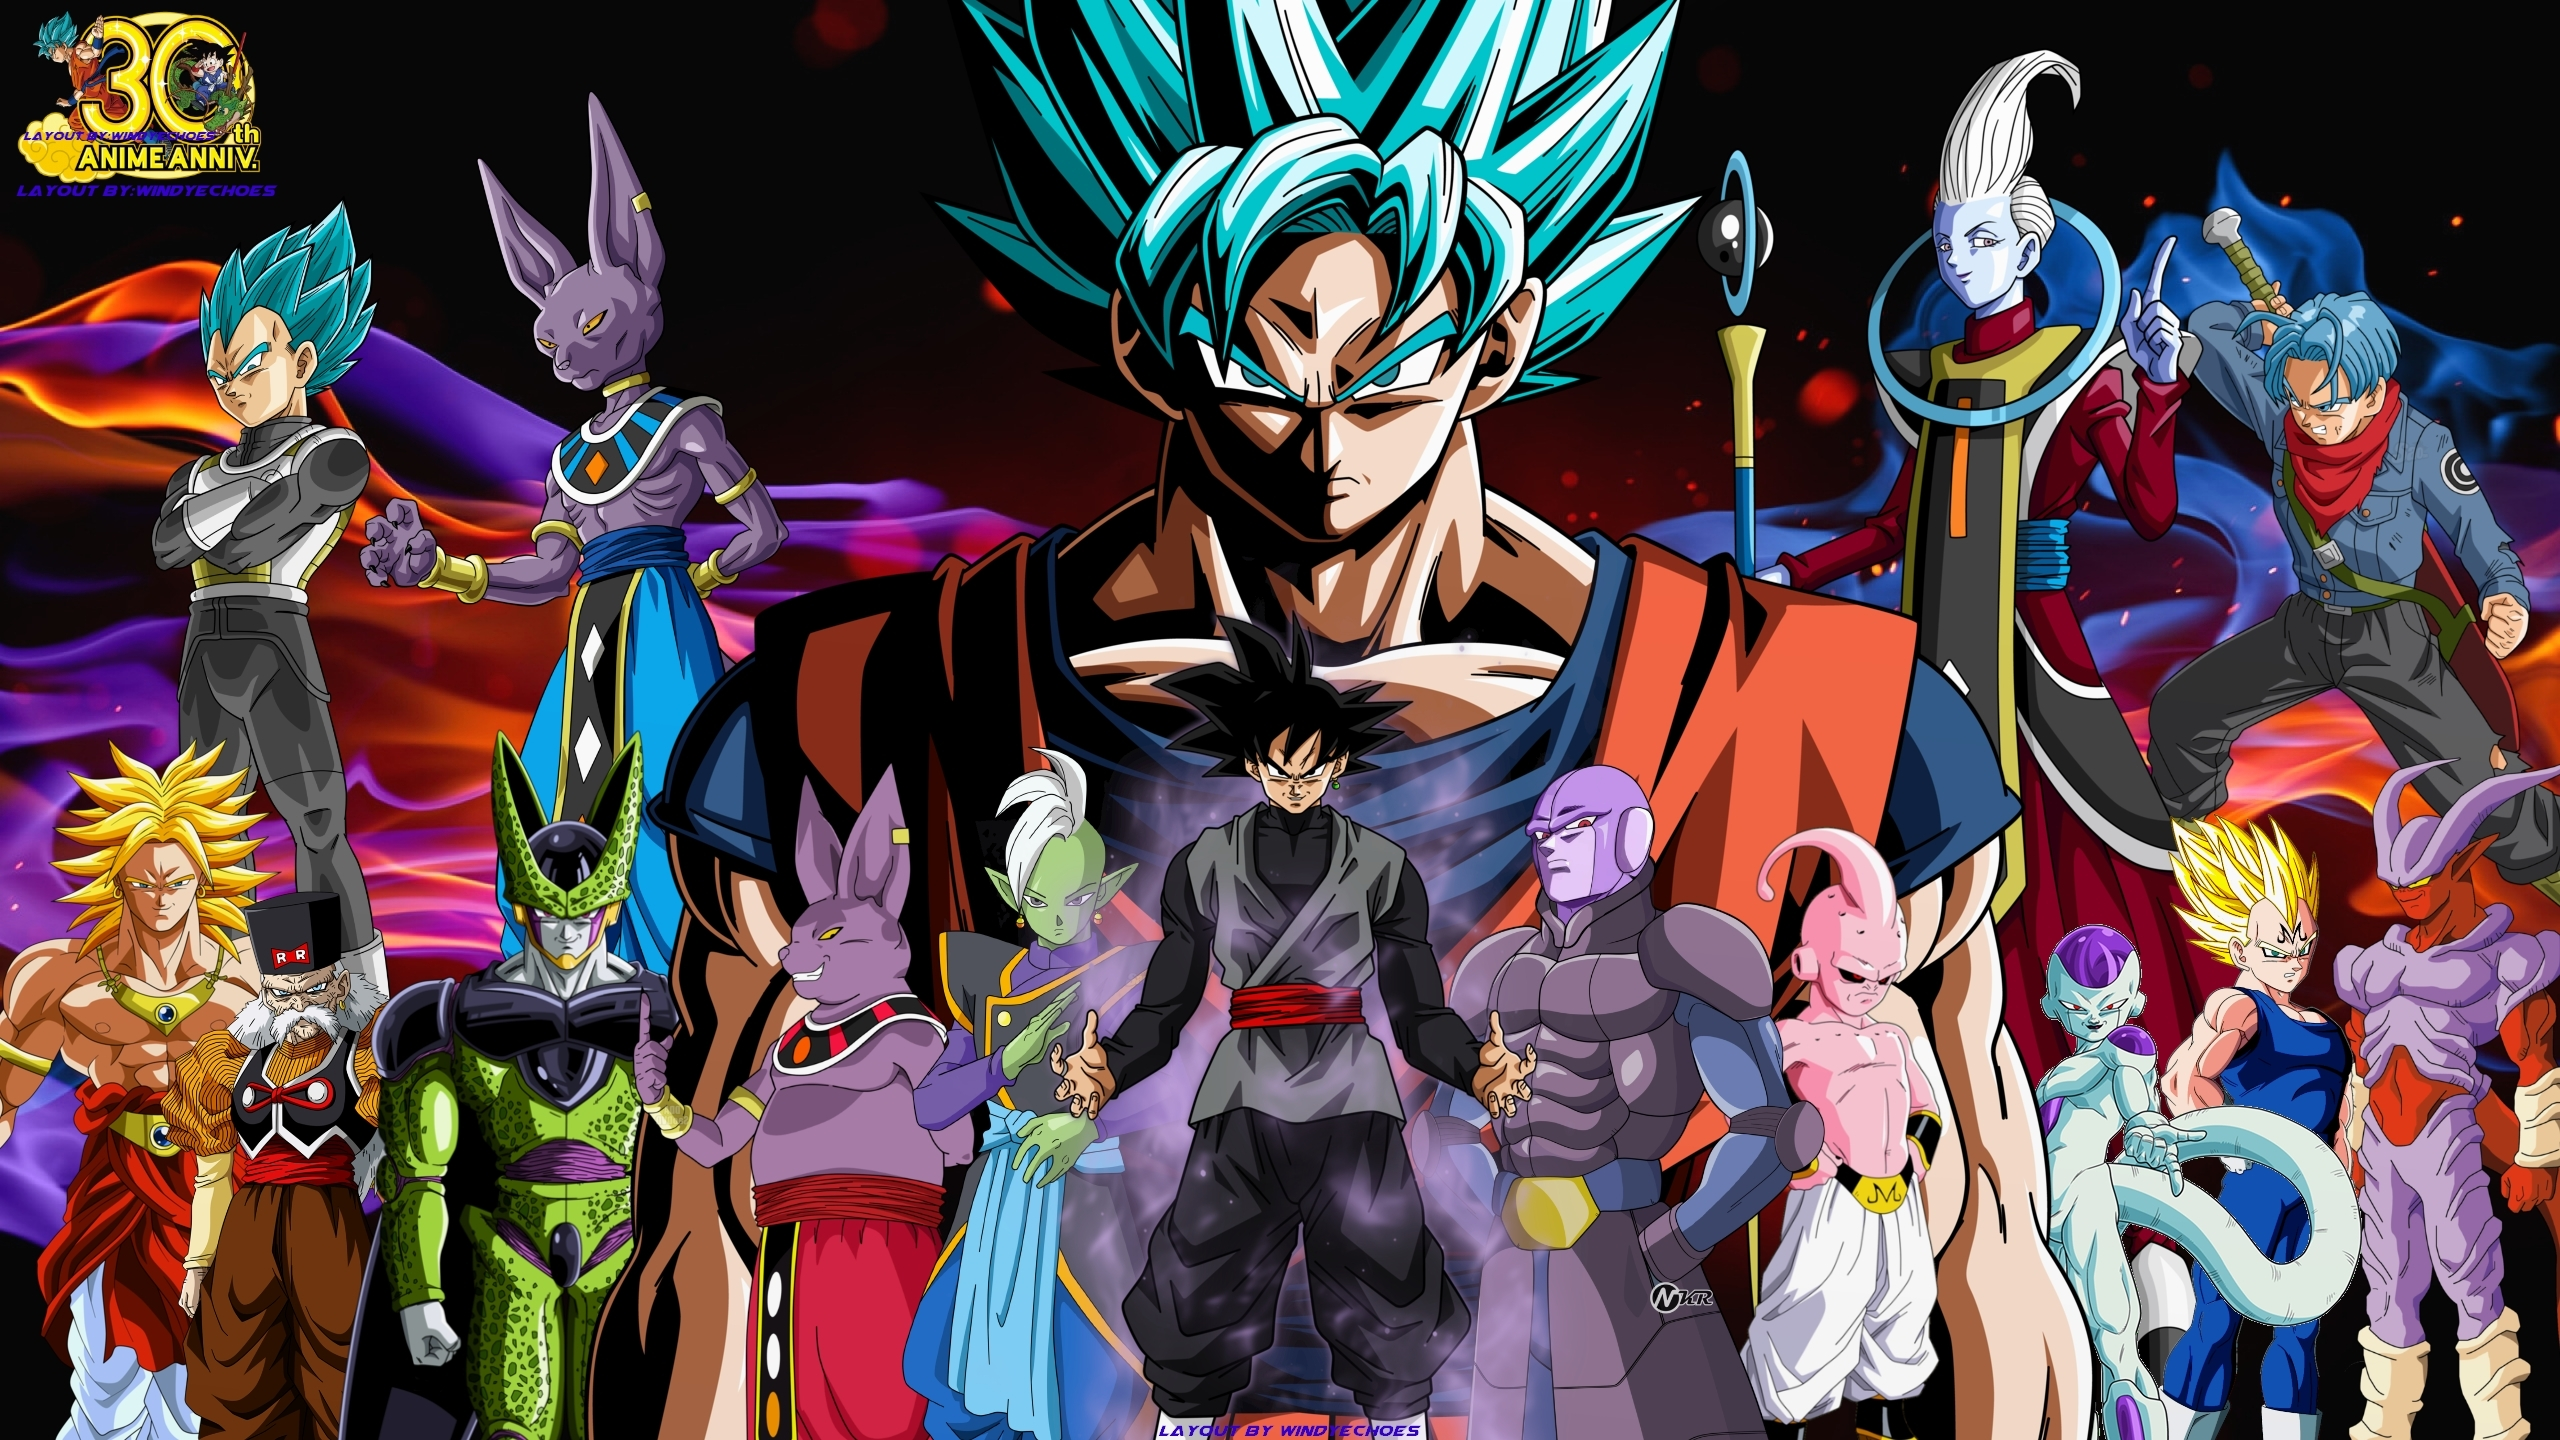 10 new 4k dragon ball super wallpaper full hd 1920×1080 for pc